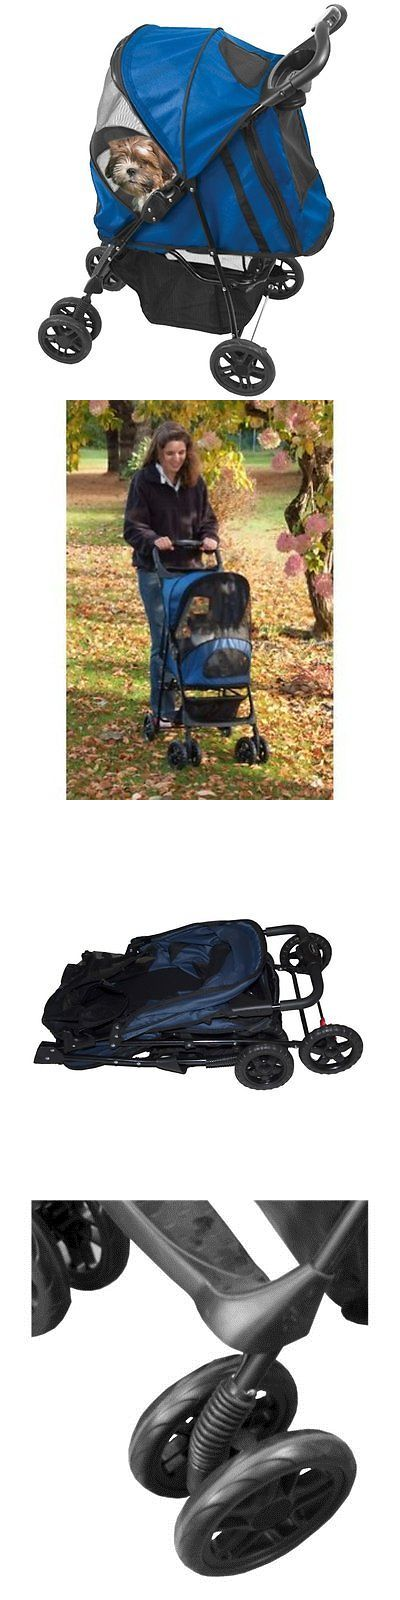 Strollers 116380: Pet Gear Happy Trails Pet Stroller For Cats And Dogs Up To 30-Pounds, Cobalt -> BUY IT NOW ONLY: $86.39 on eBay!